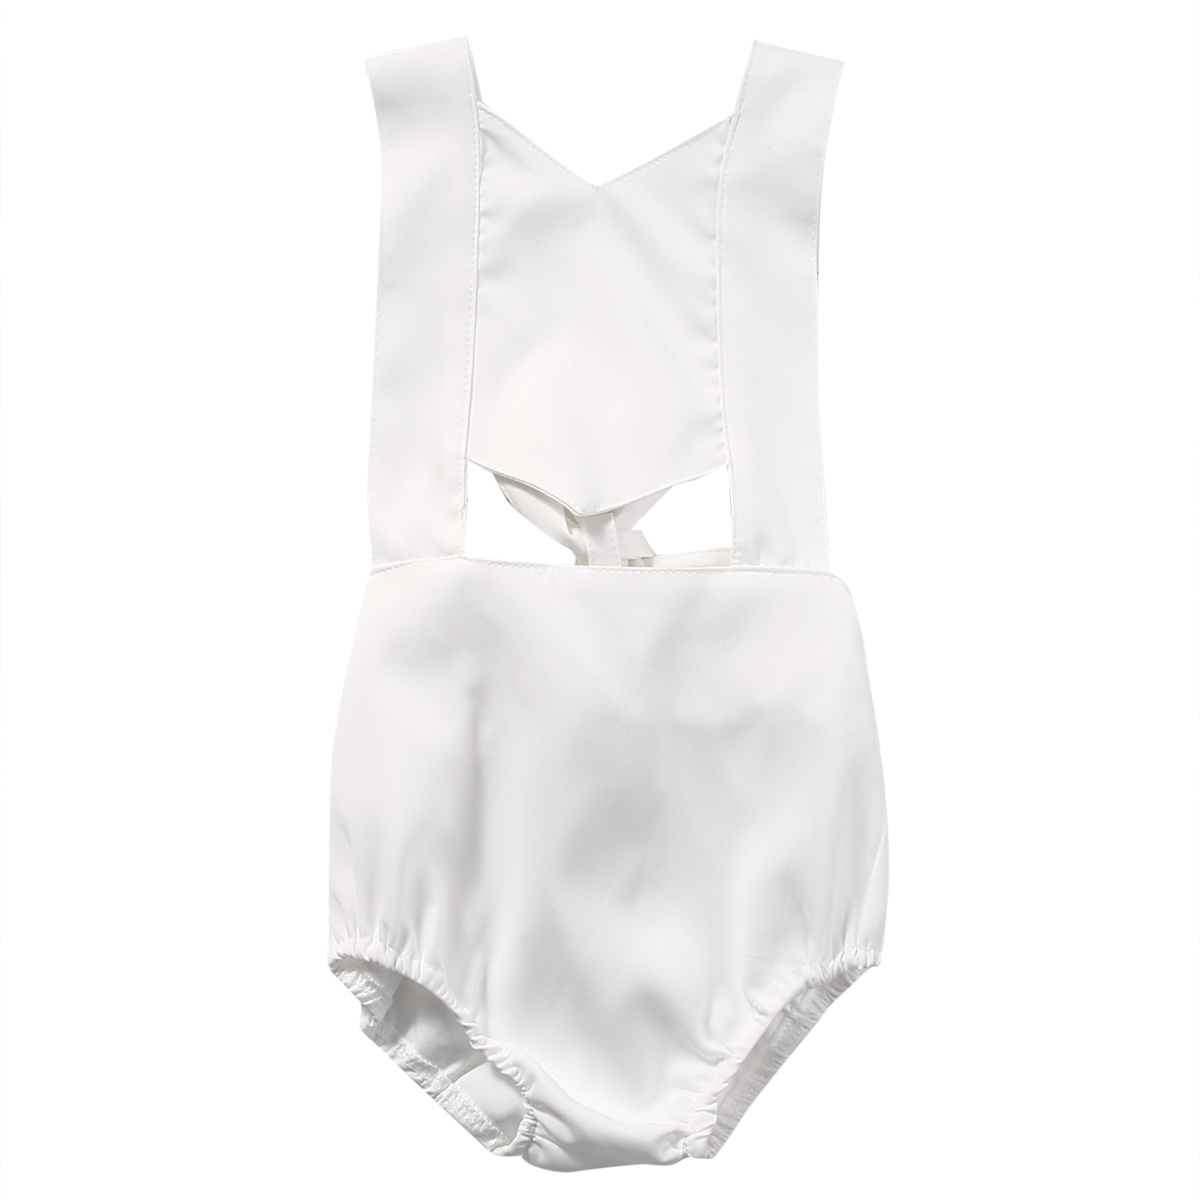 Fashion Newborn Baby Girls Clothes Infant Romper Jumpsuit Backless Sunsuit Sleeveless Baby Girl Clothing cute newborn baby girl clothes floral lace romper 2017 summer sleeveless infant bebes princess onepieces sunsuit outfit jumpsuit